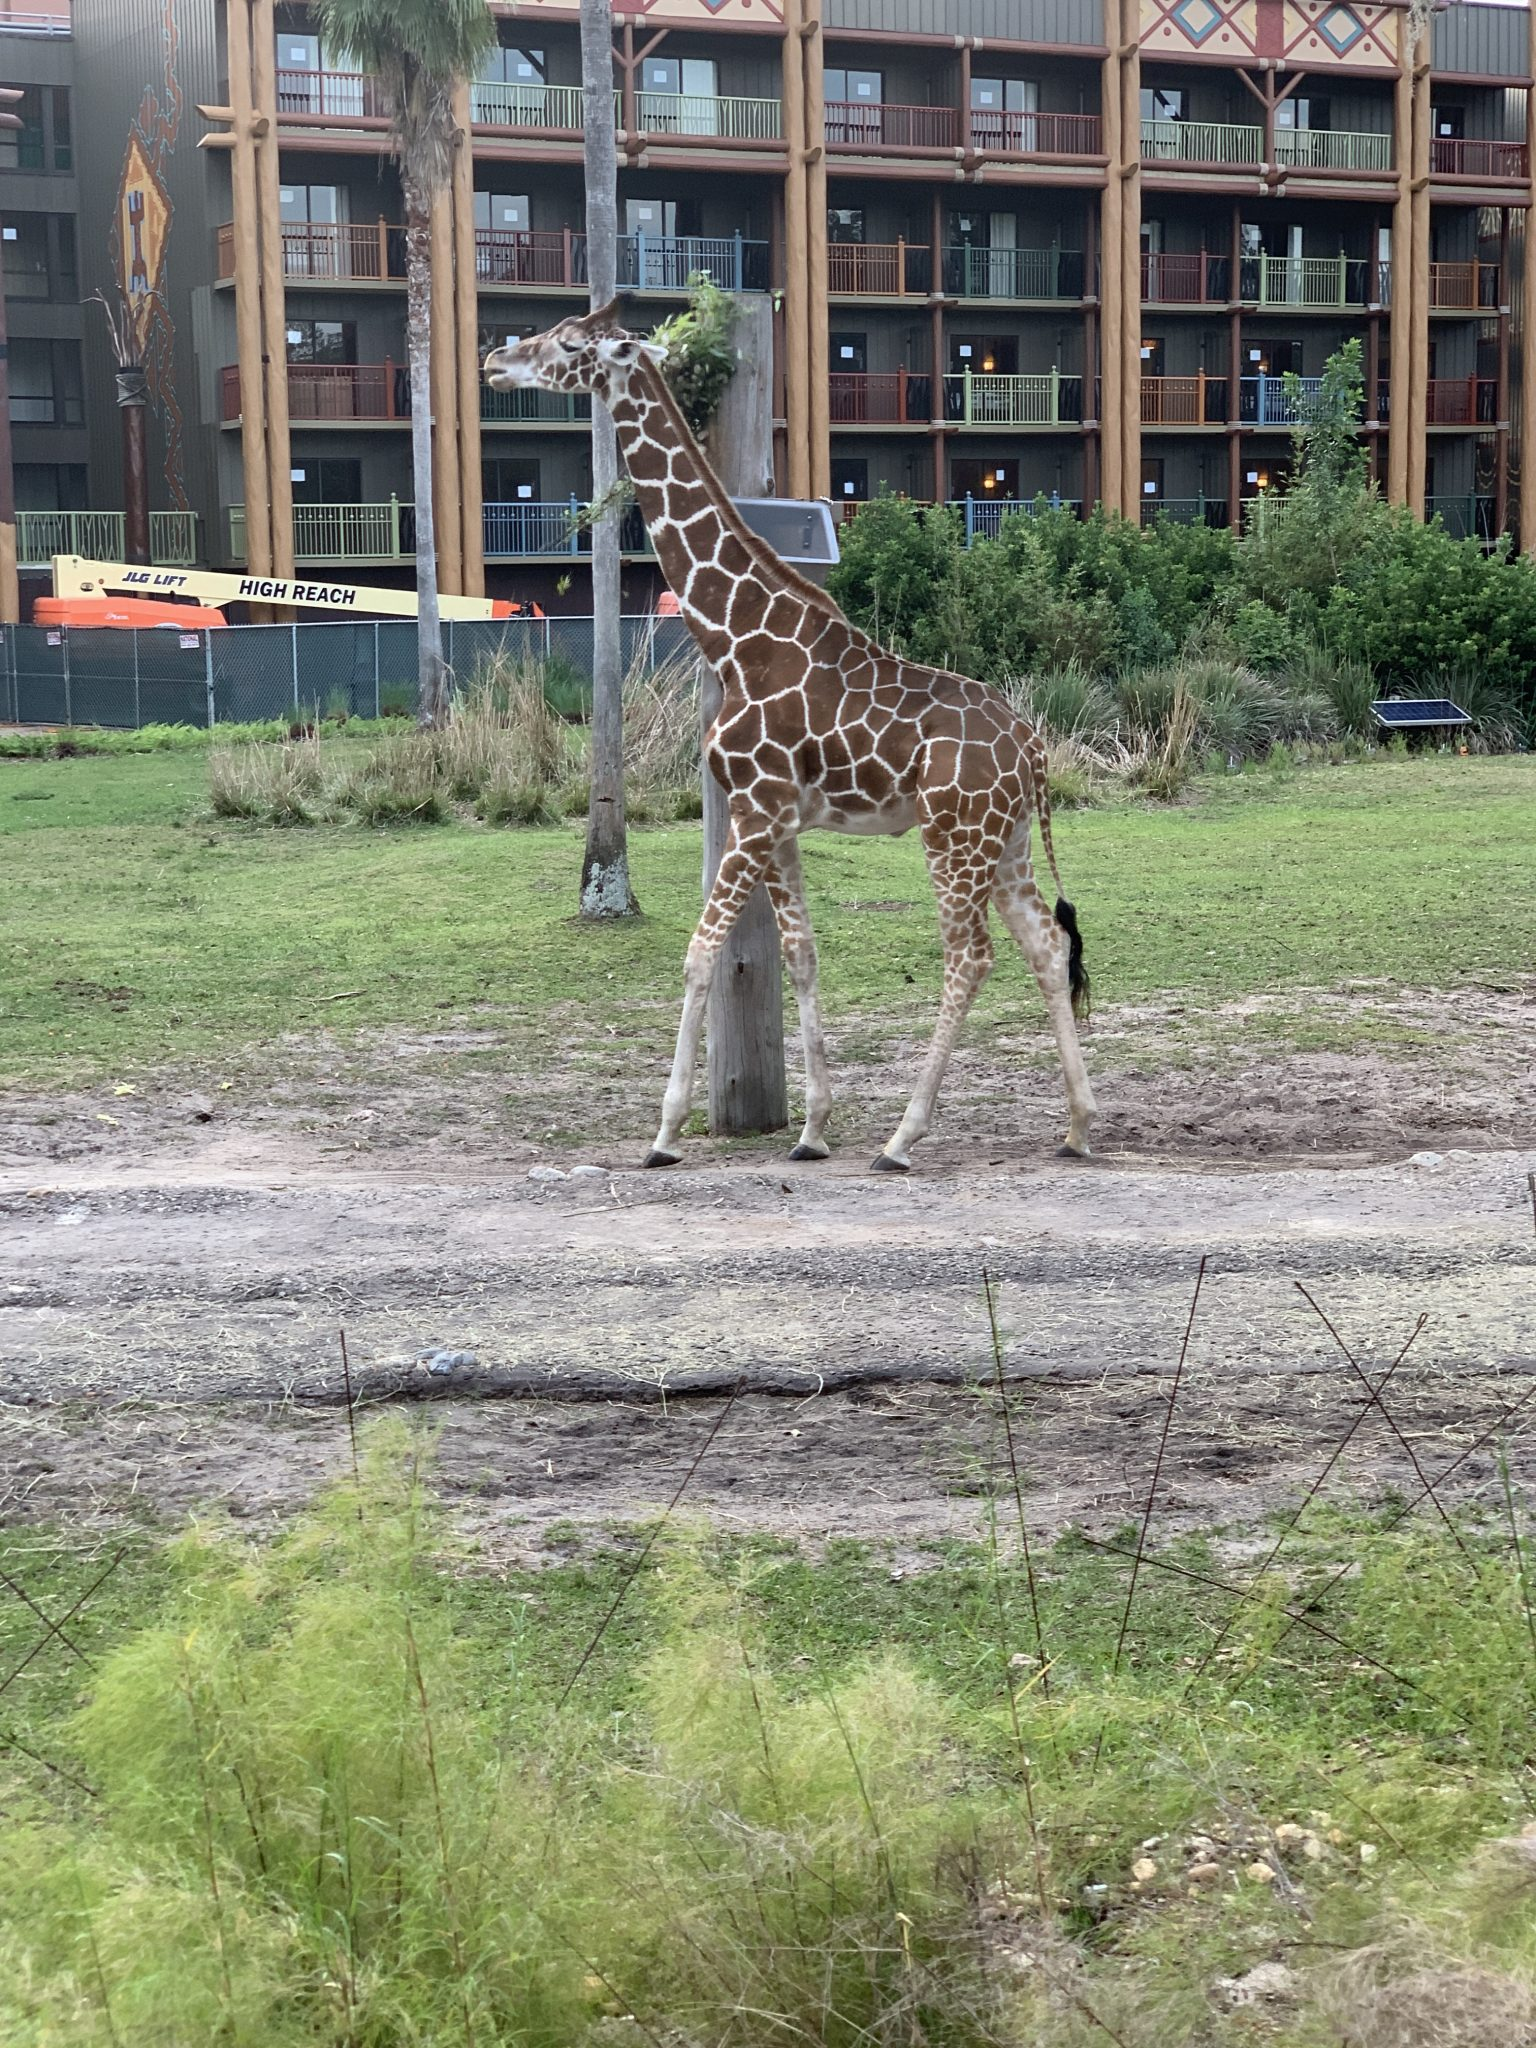 animals on the savannah at Animal Kingdom Lodge